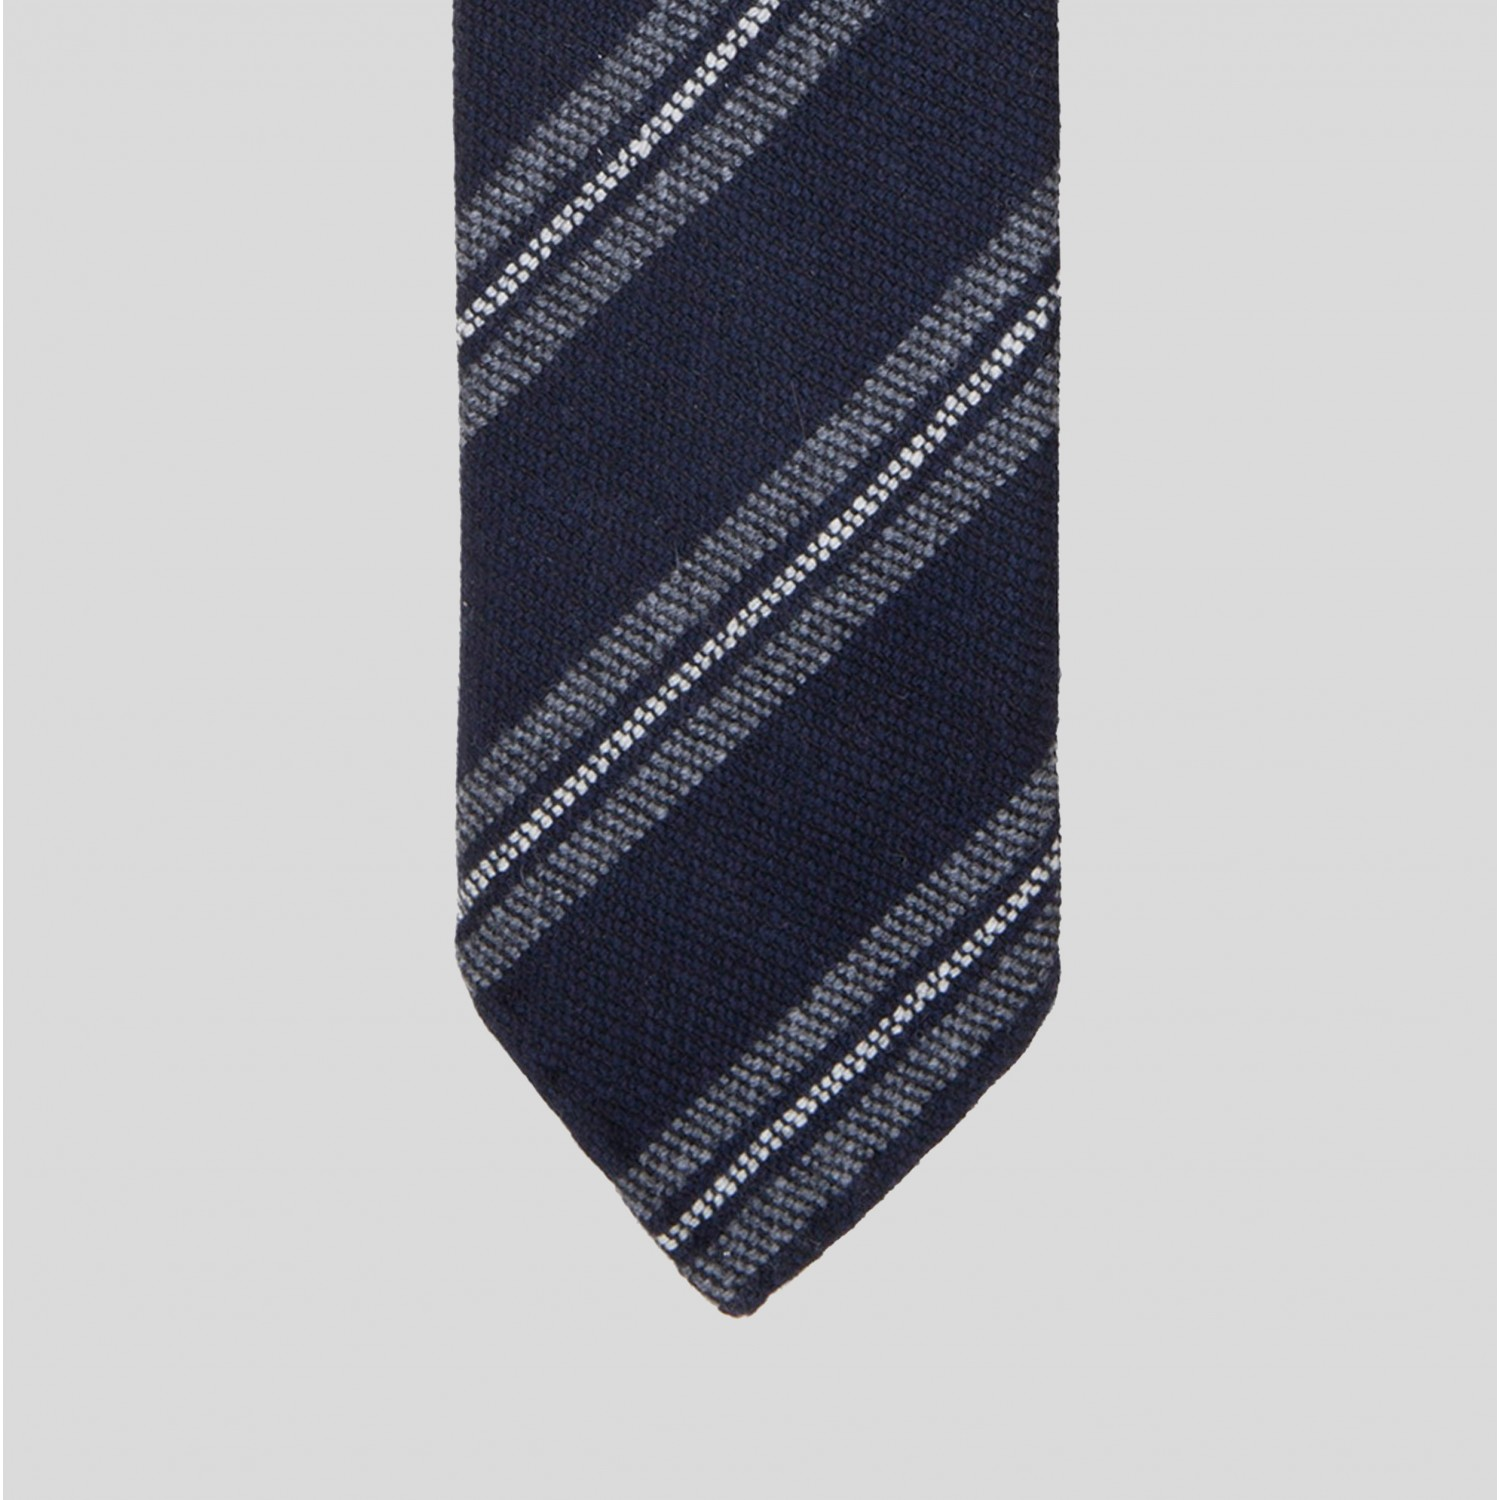 stripe woven wool tie navy grey white beige